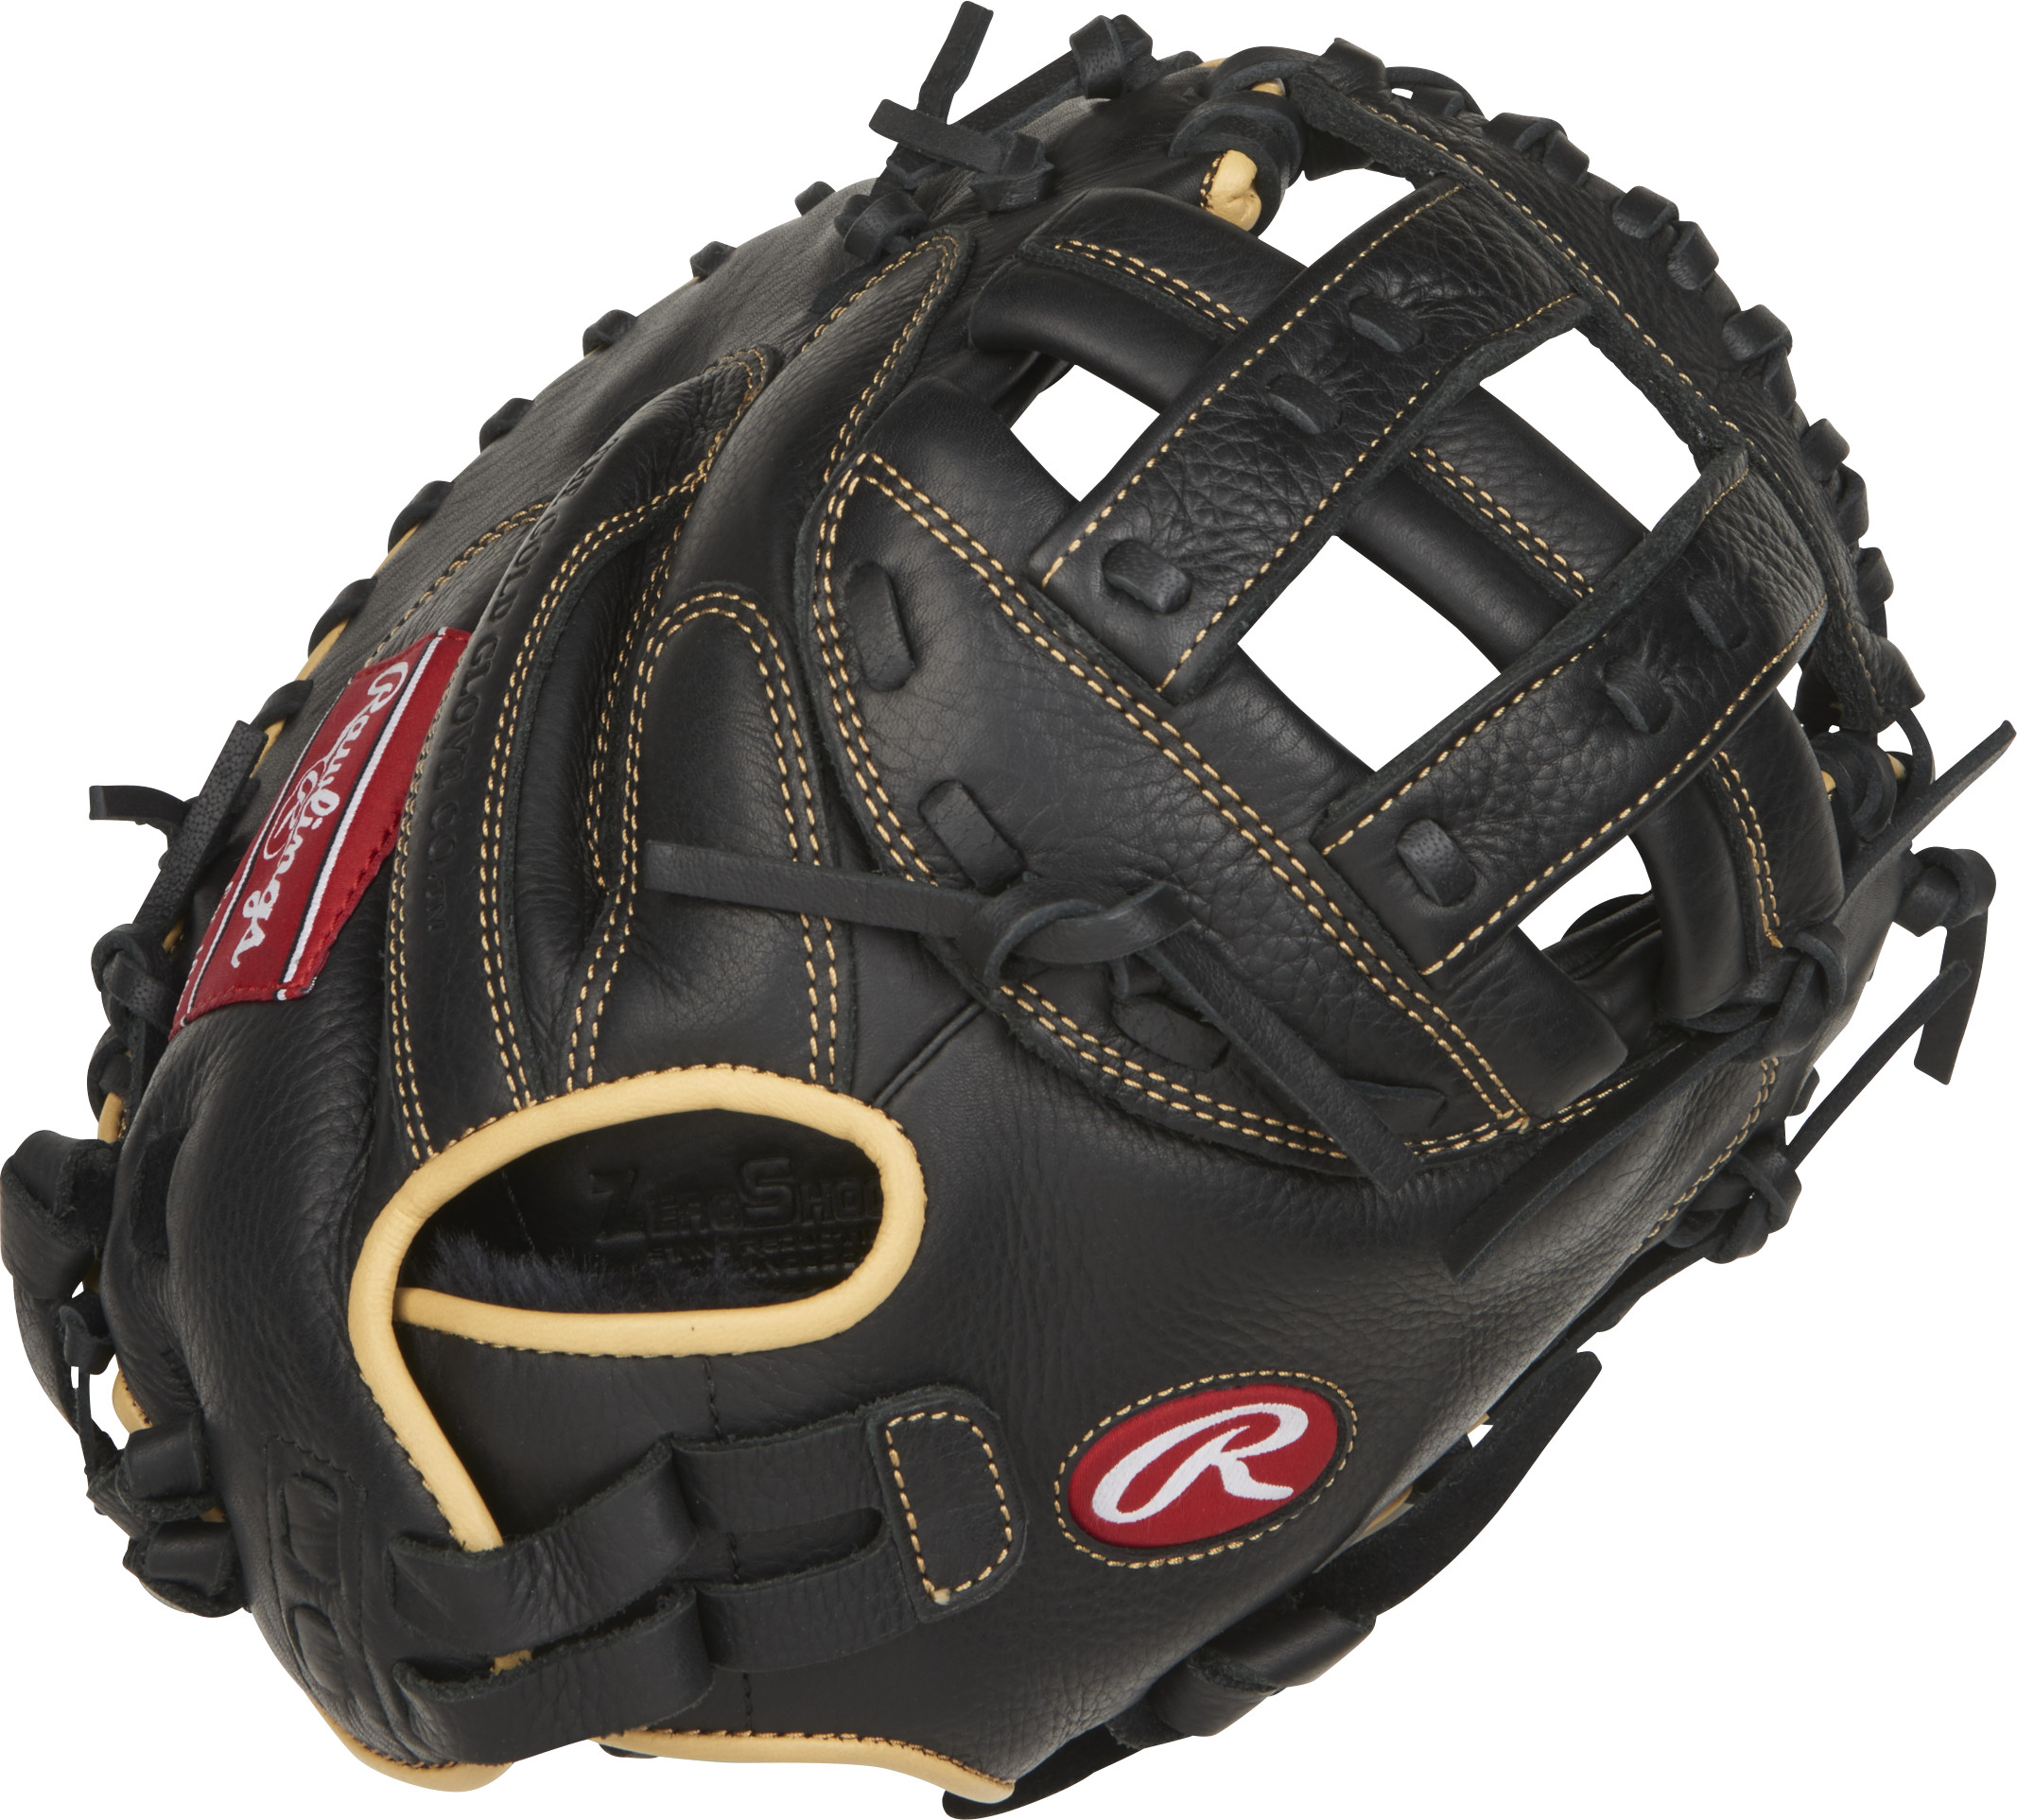 http://www.bestbatdeals.com/images/gloves/rawlings/RSOCM33BCC-2.jpg